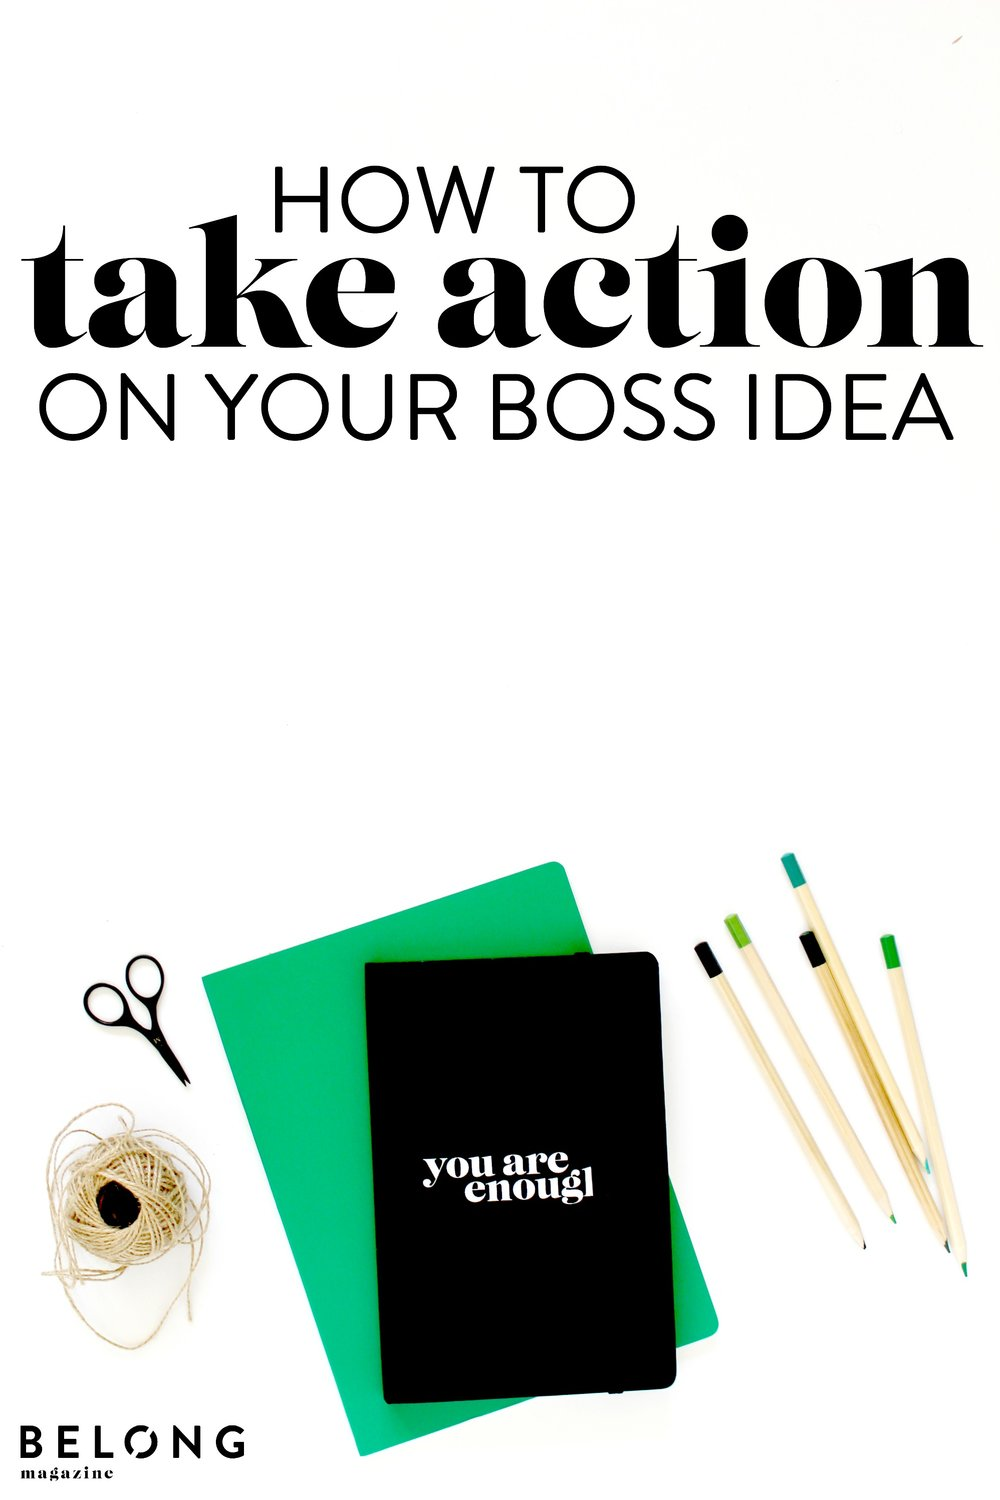 how to take action on your boss idea pin.jpg